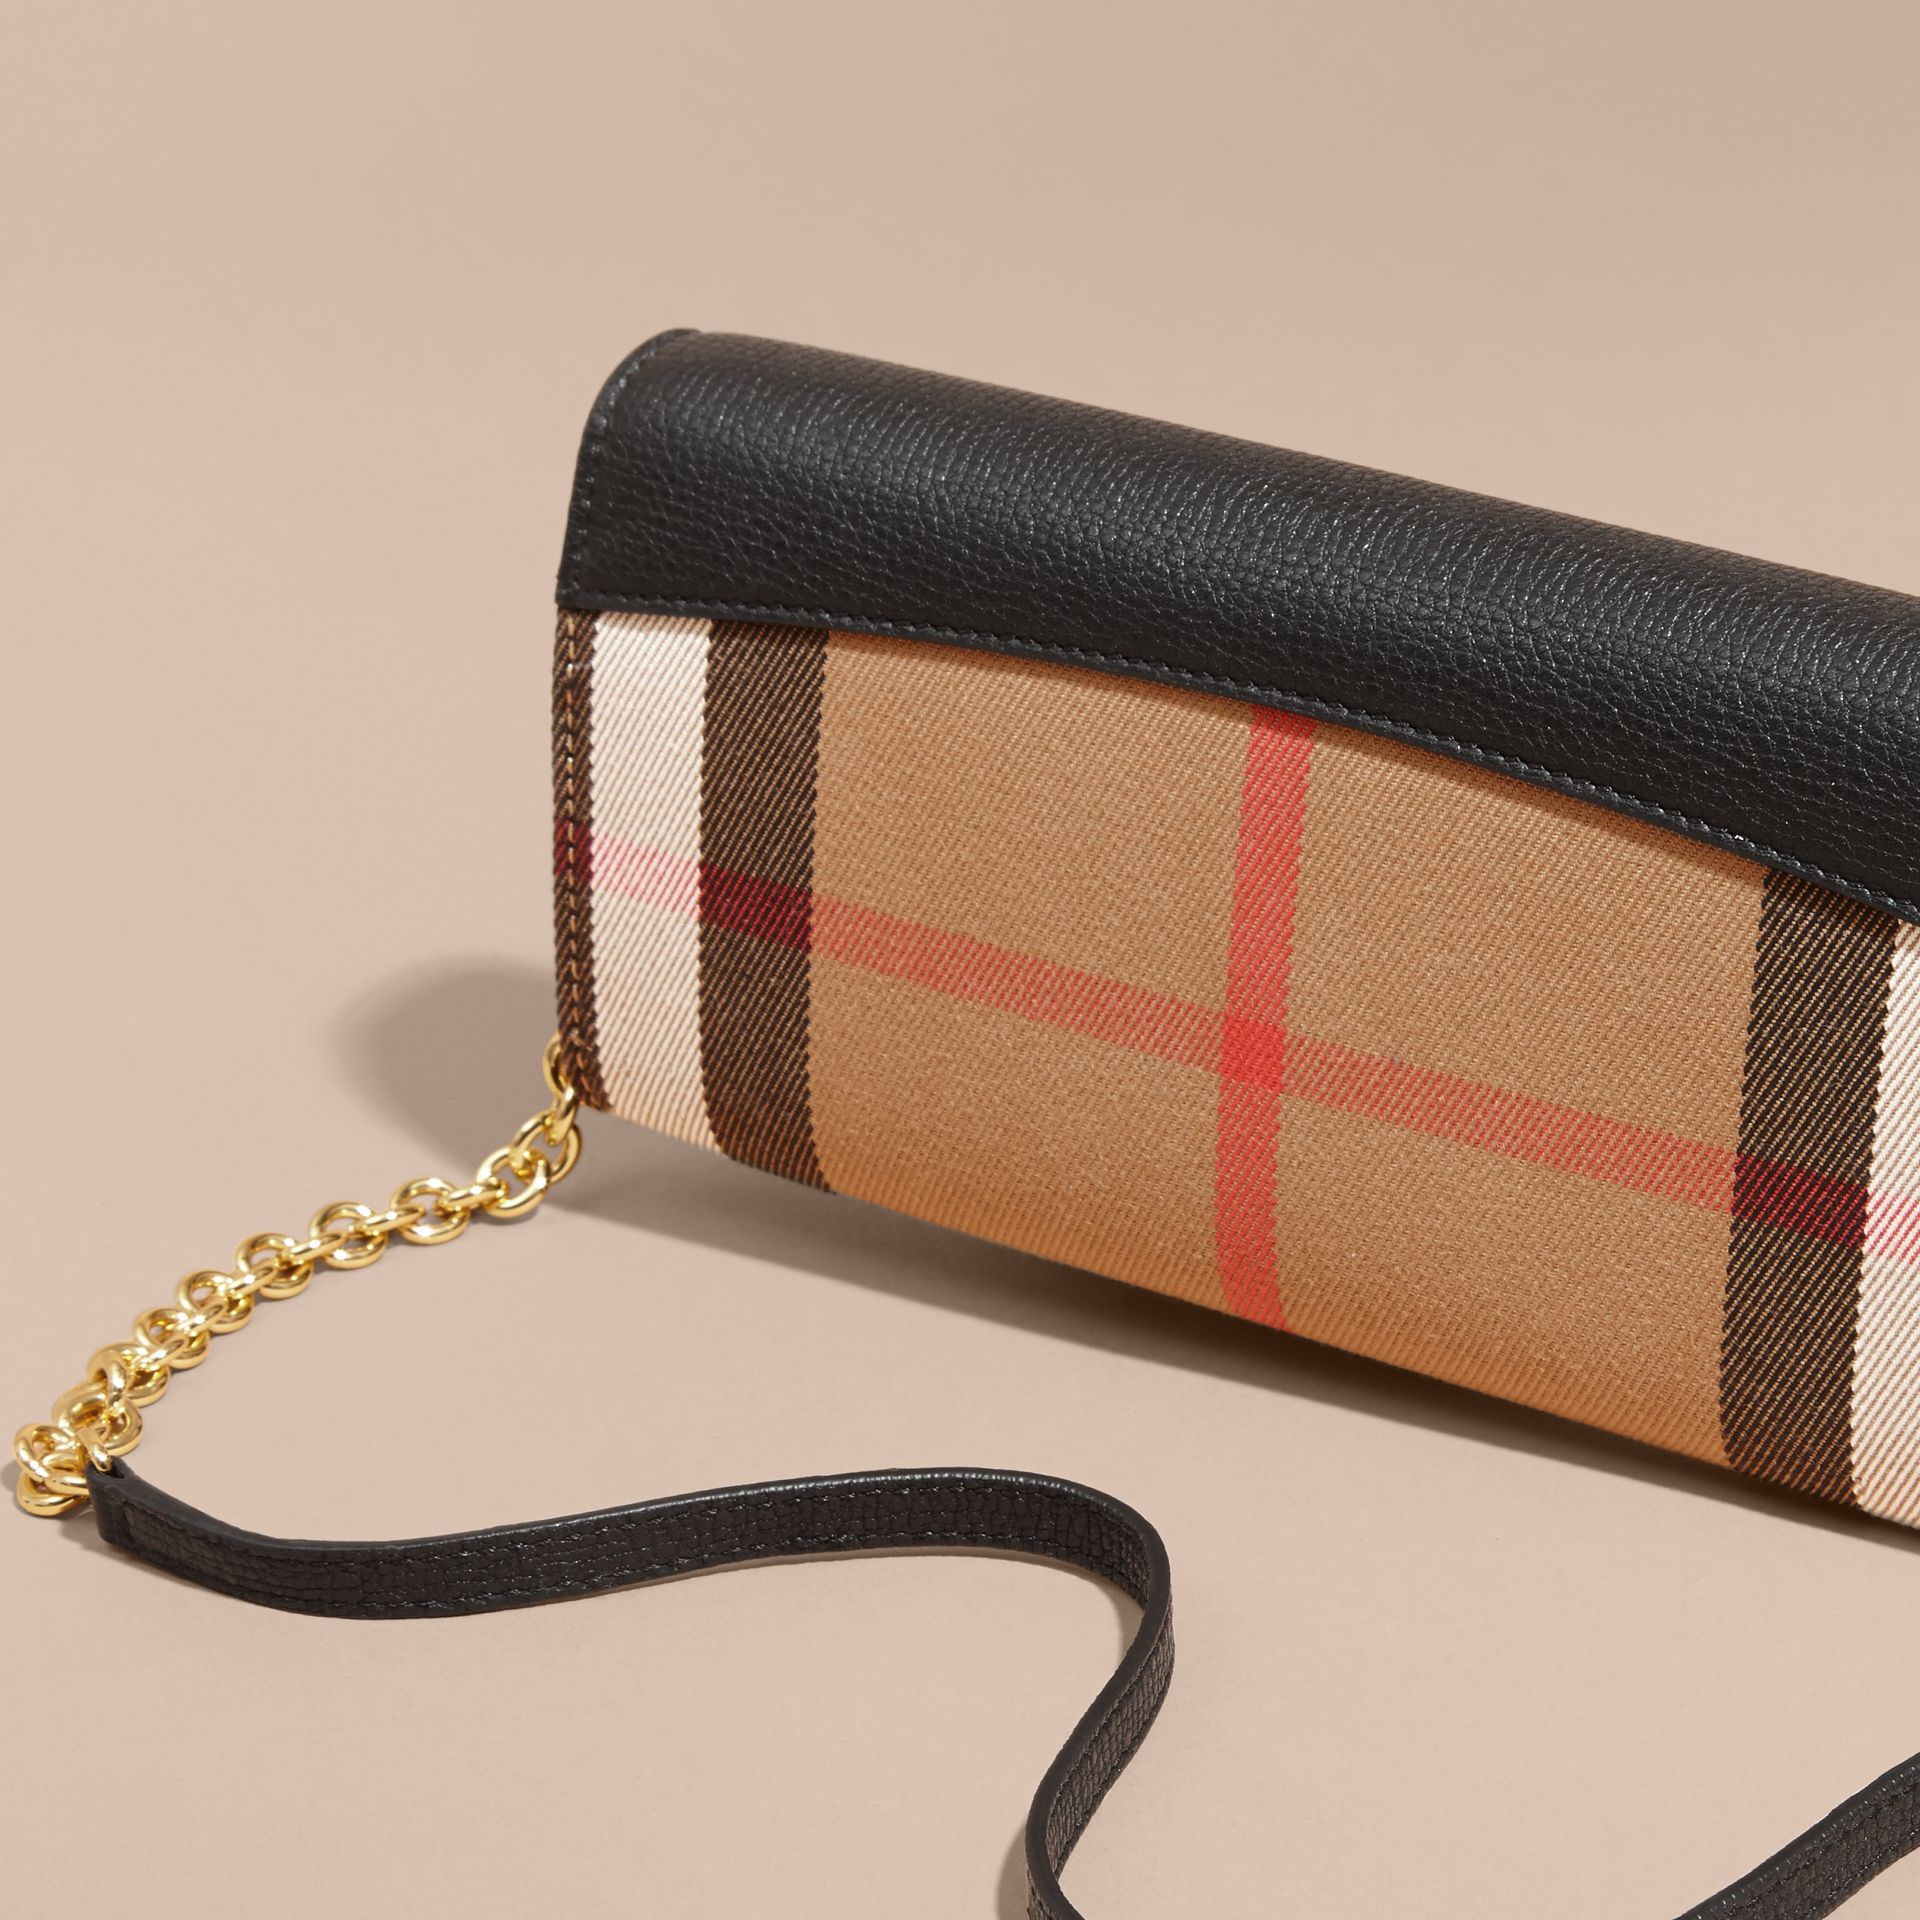 House Check and Leather Wallet with Chain in Black - Women | Burberry - gallery image 5